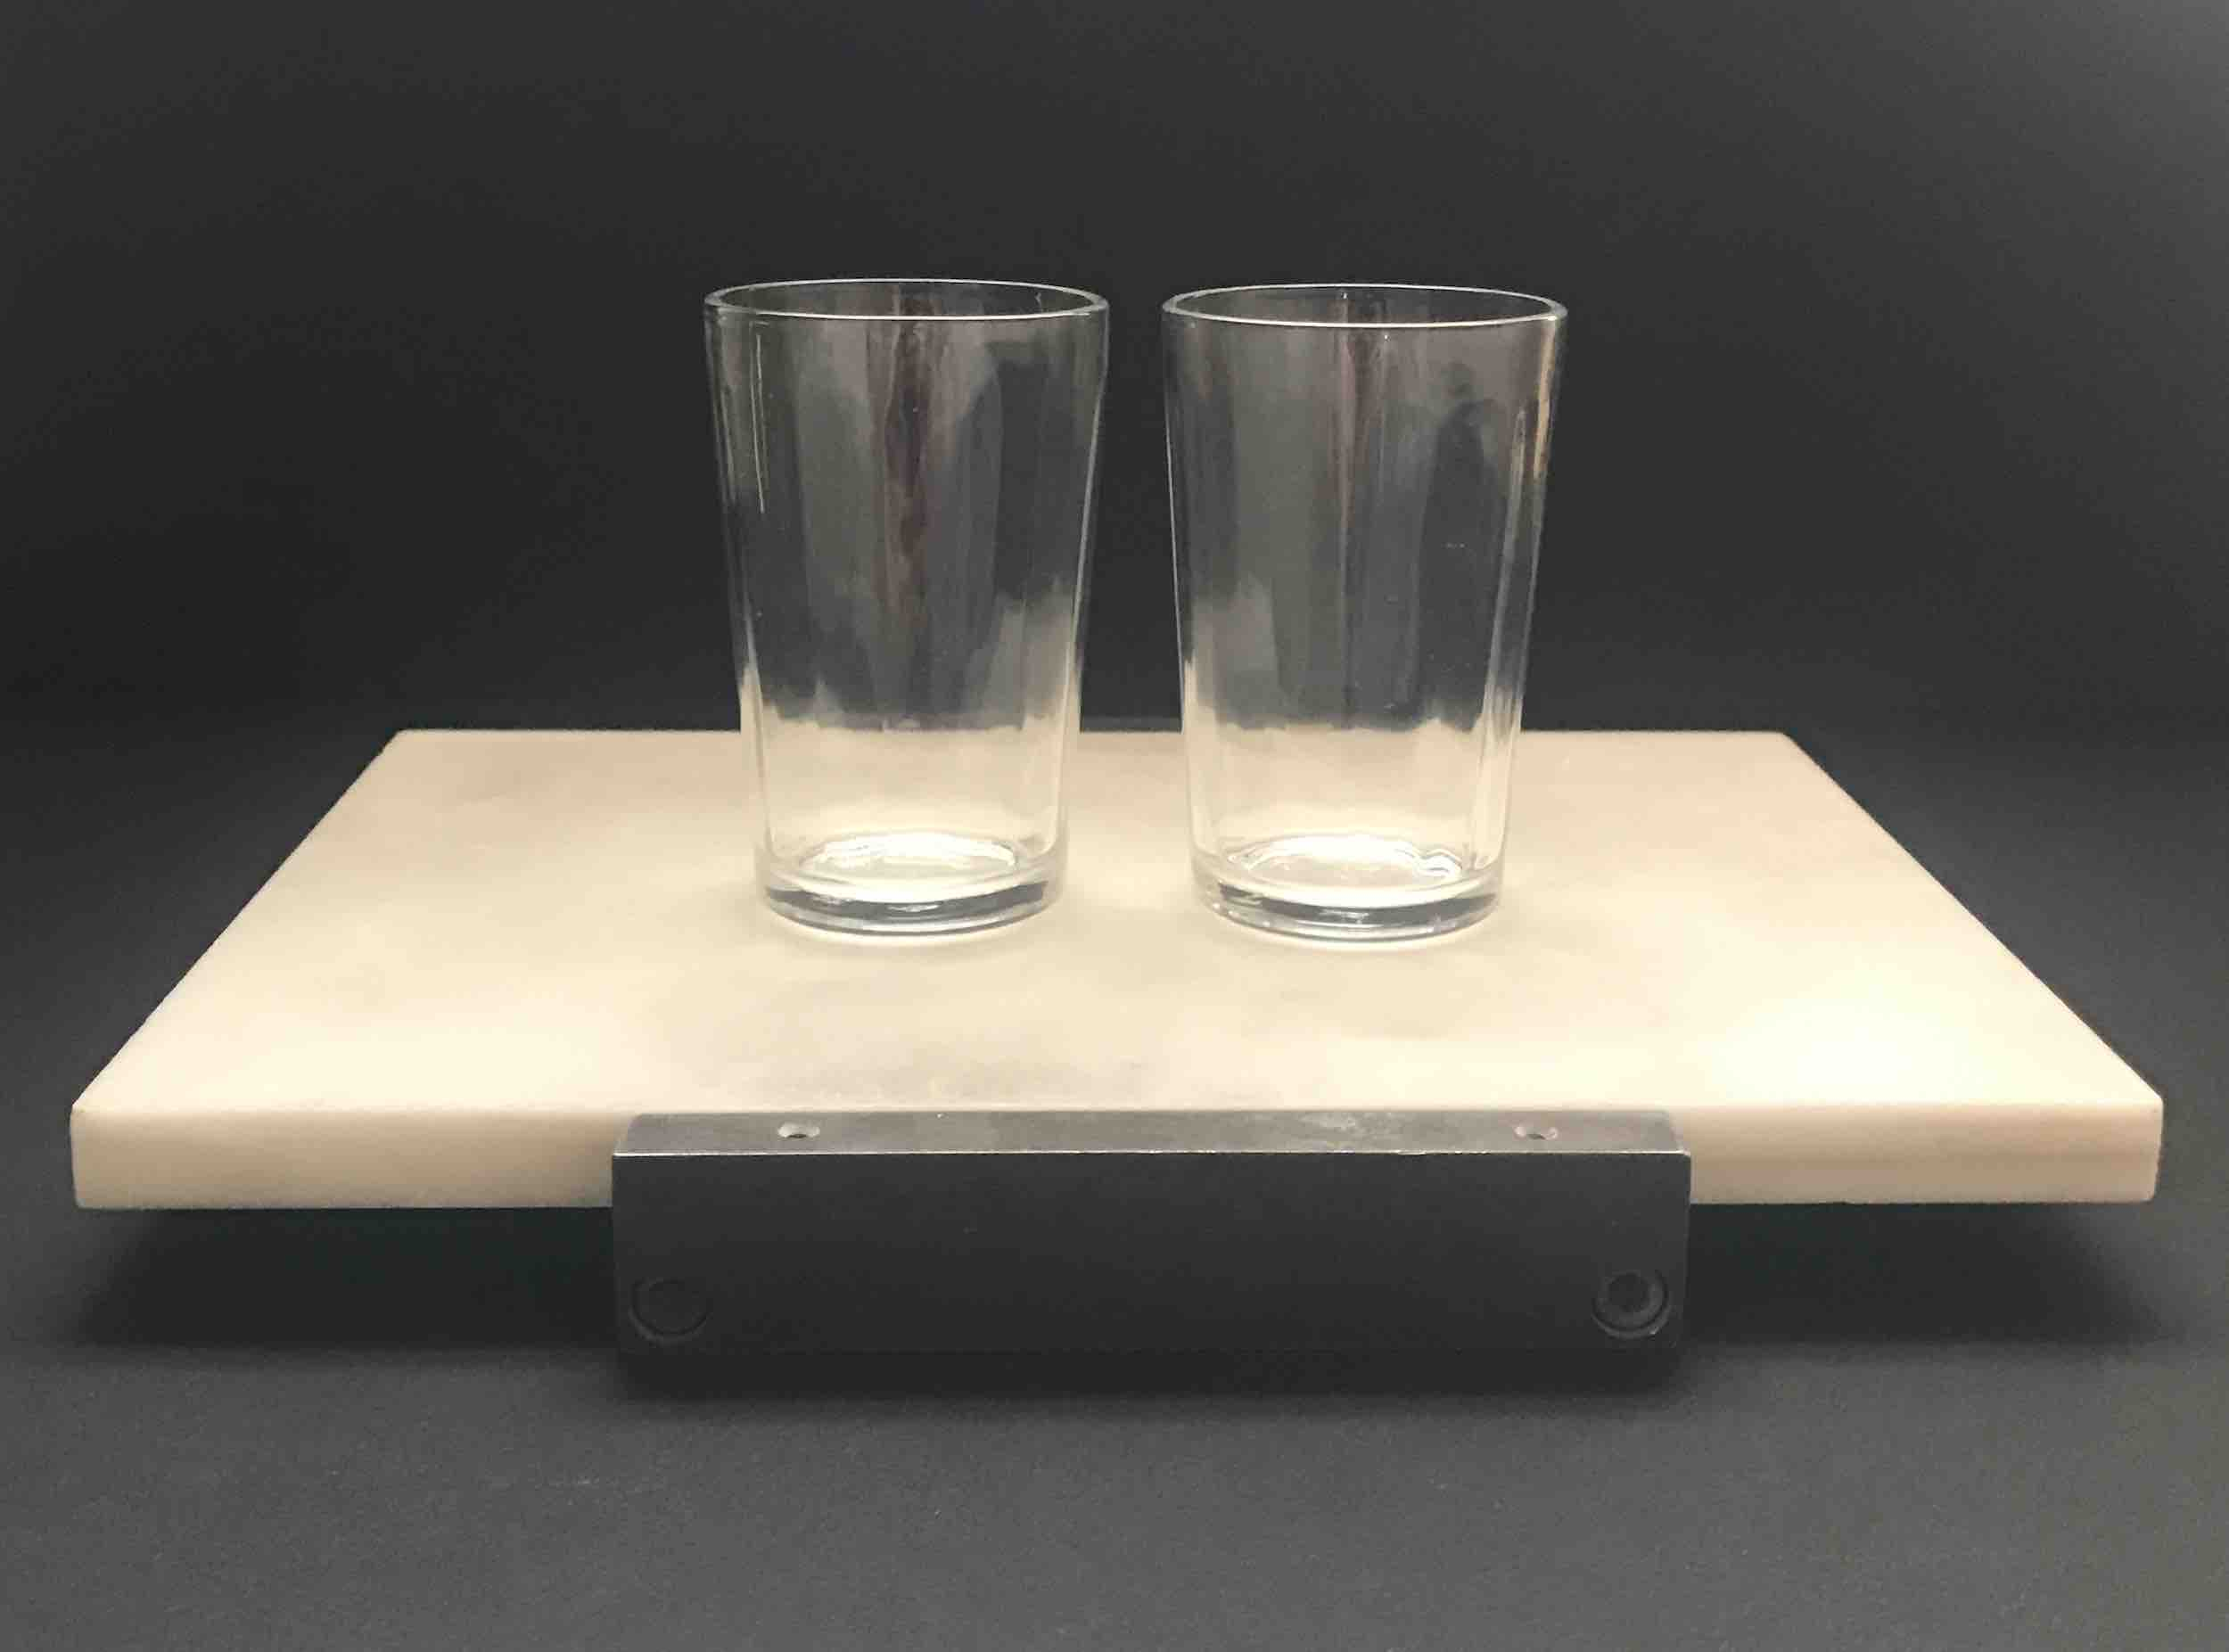 "#8: Marble slab on bronze frame with two ribbed tumblers. 3.5"" x 10"" x 7"" (SOLD)"